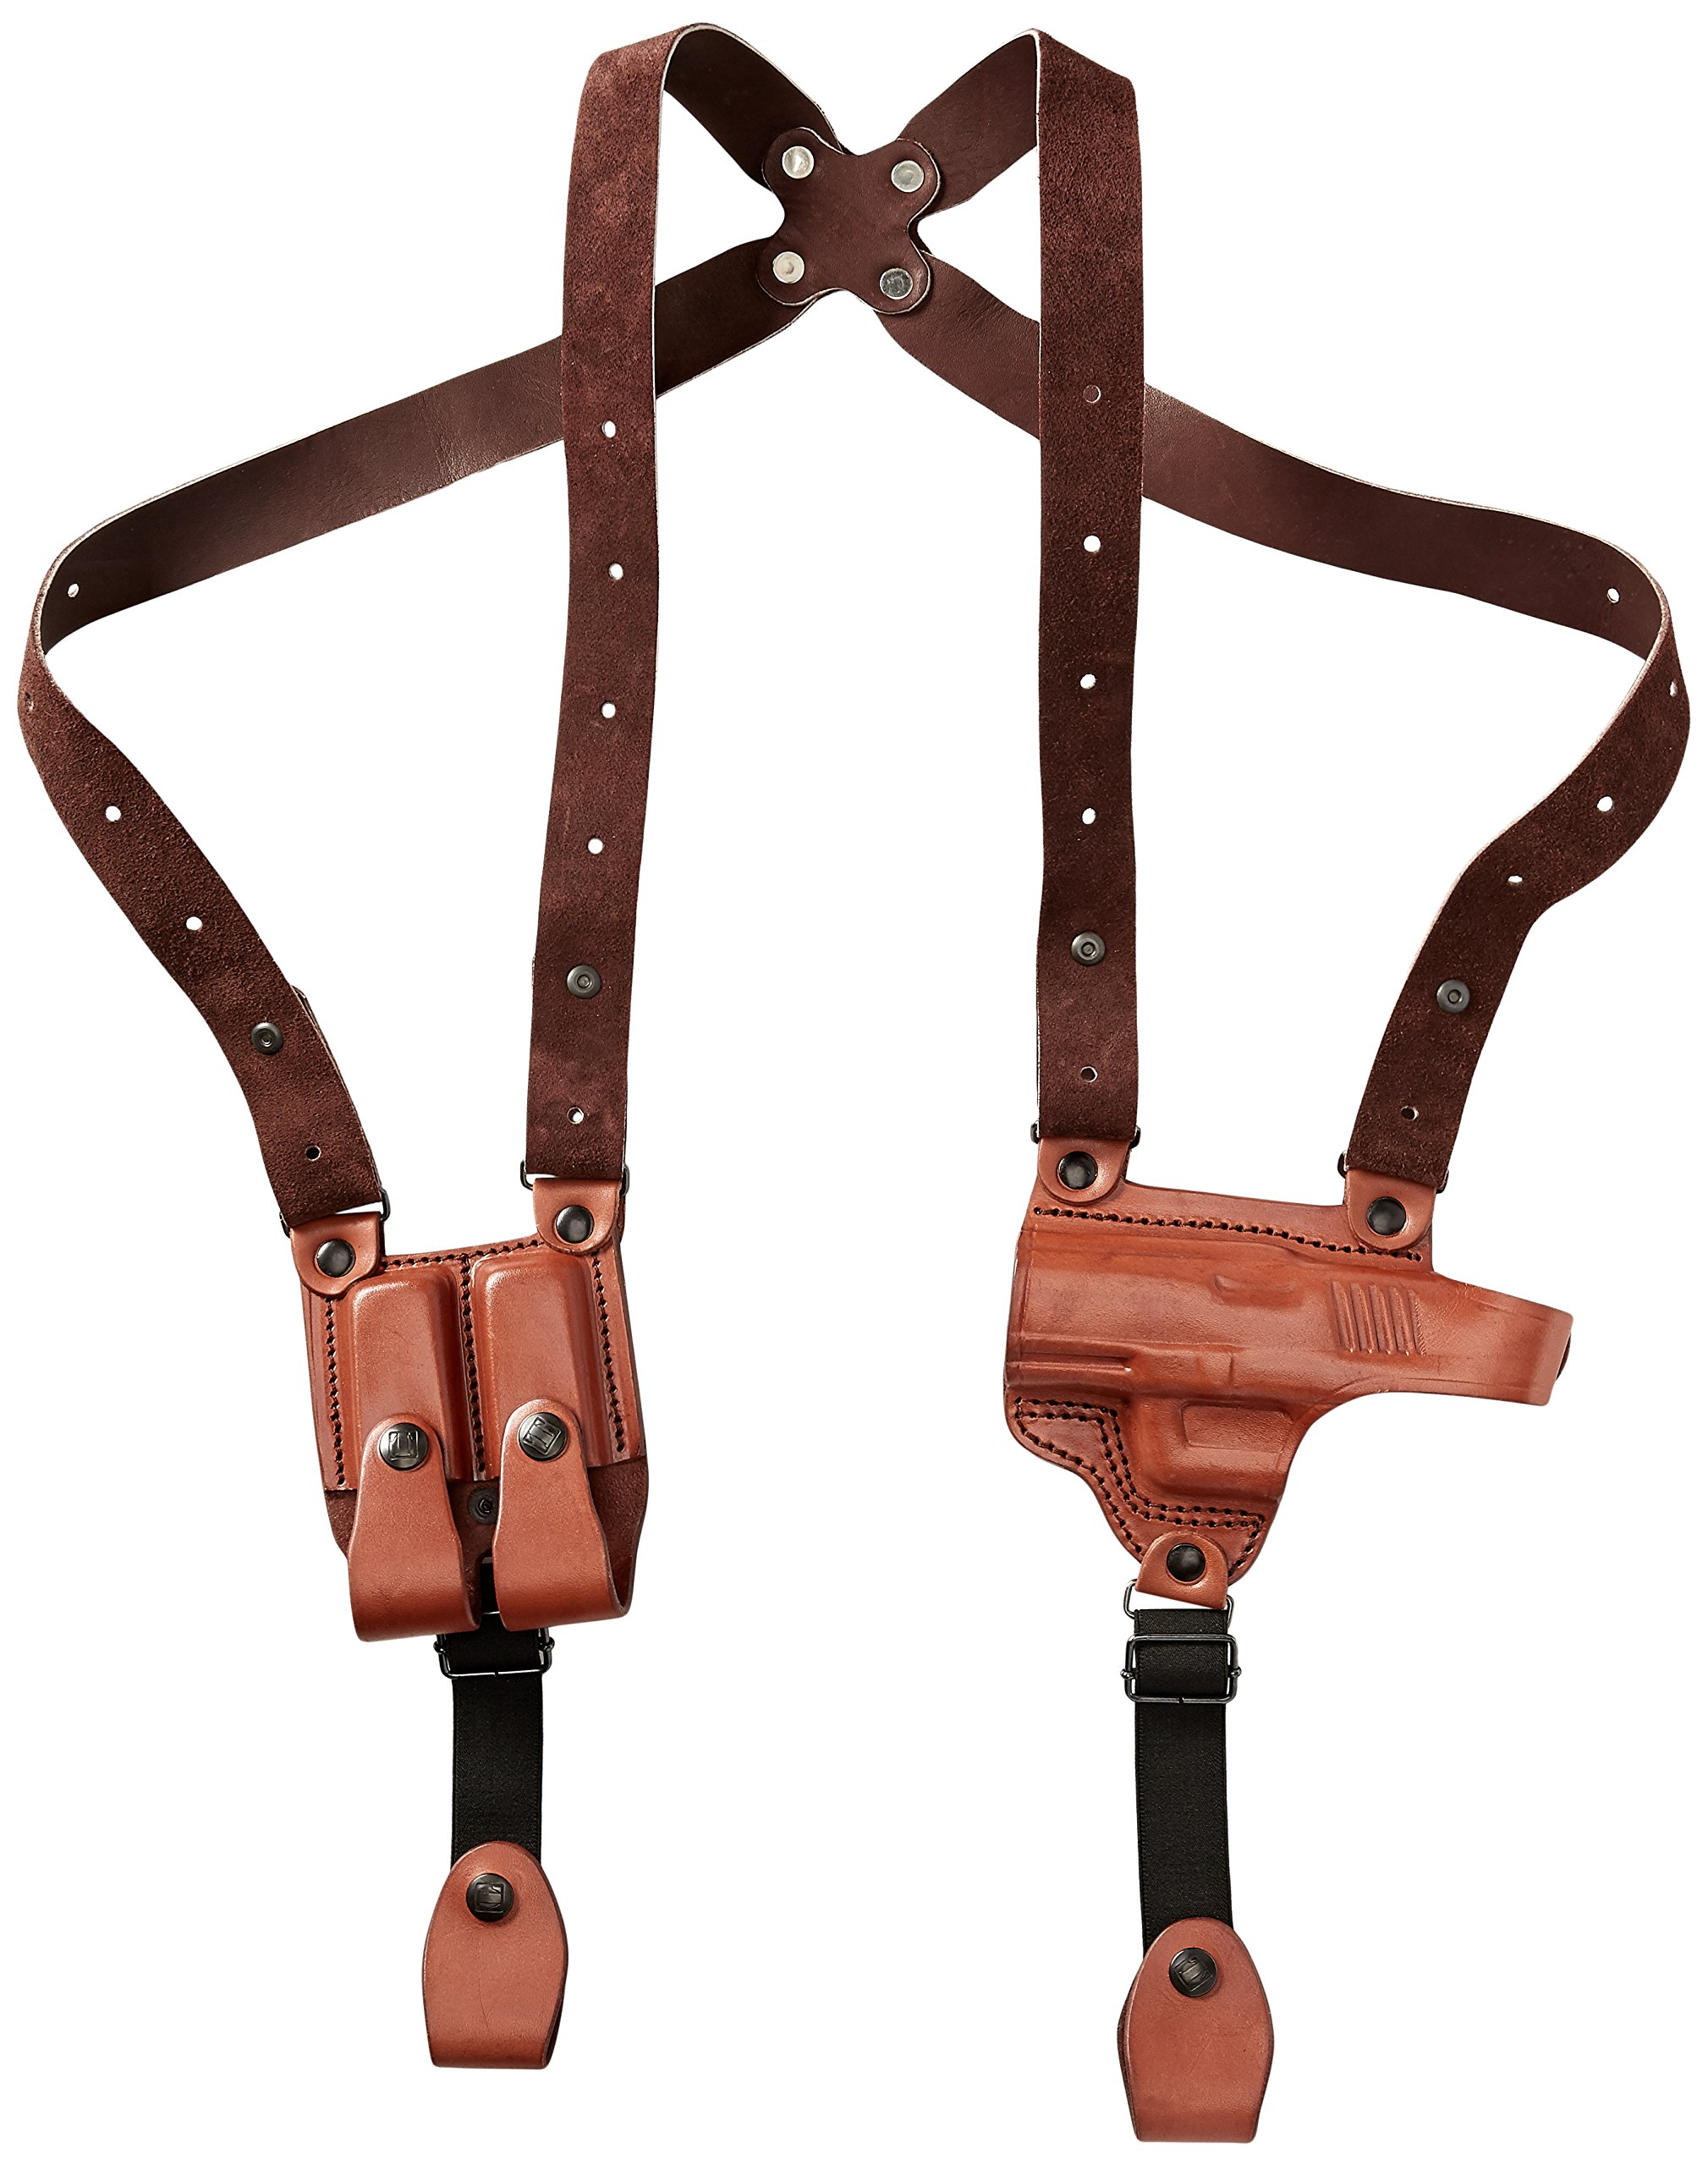 Tagua SH4-1028 Full Slide Shoulder Holster, Walther PK380, Brown, Left Hand by Tagua (Image #1)